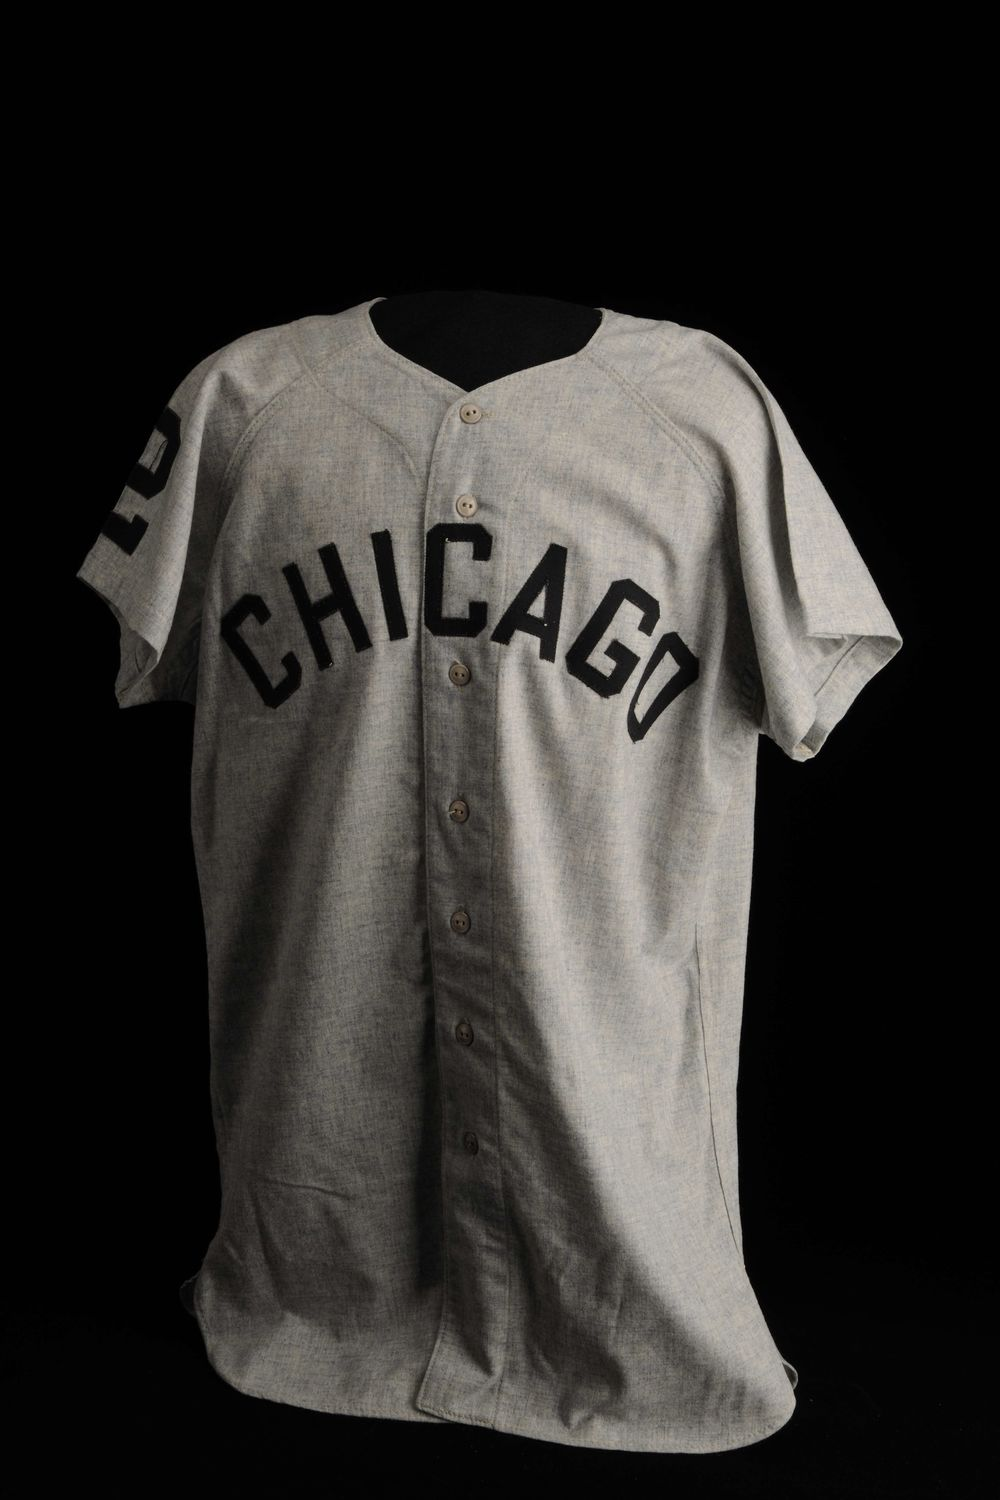 timeless design 736f7 c3480 White Sox second baseman Nellie Fox named '59 AL MVP ...